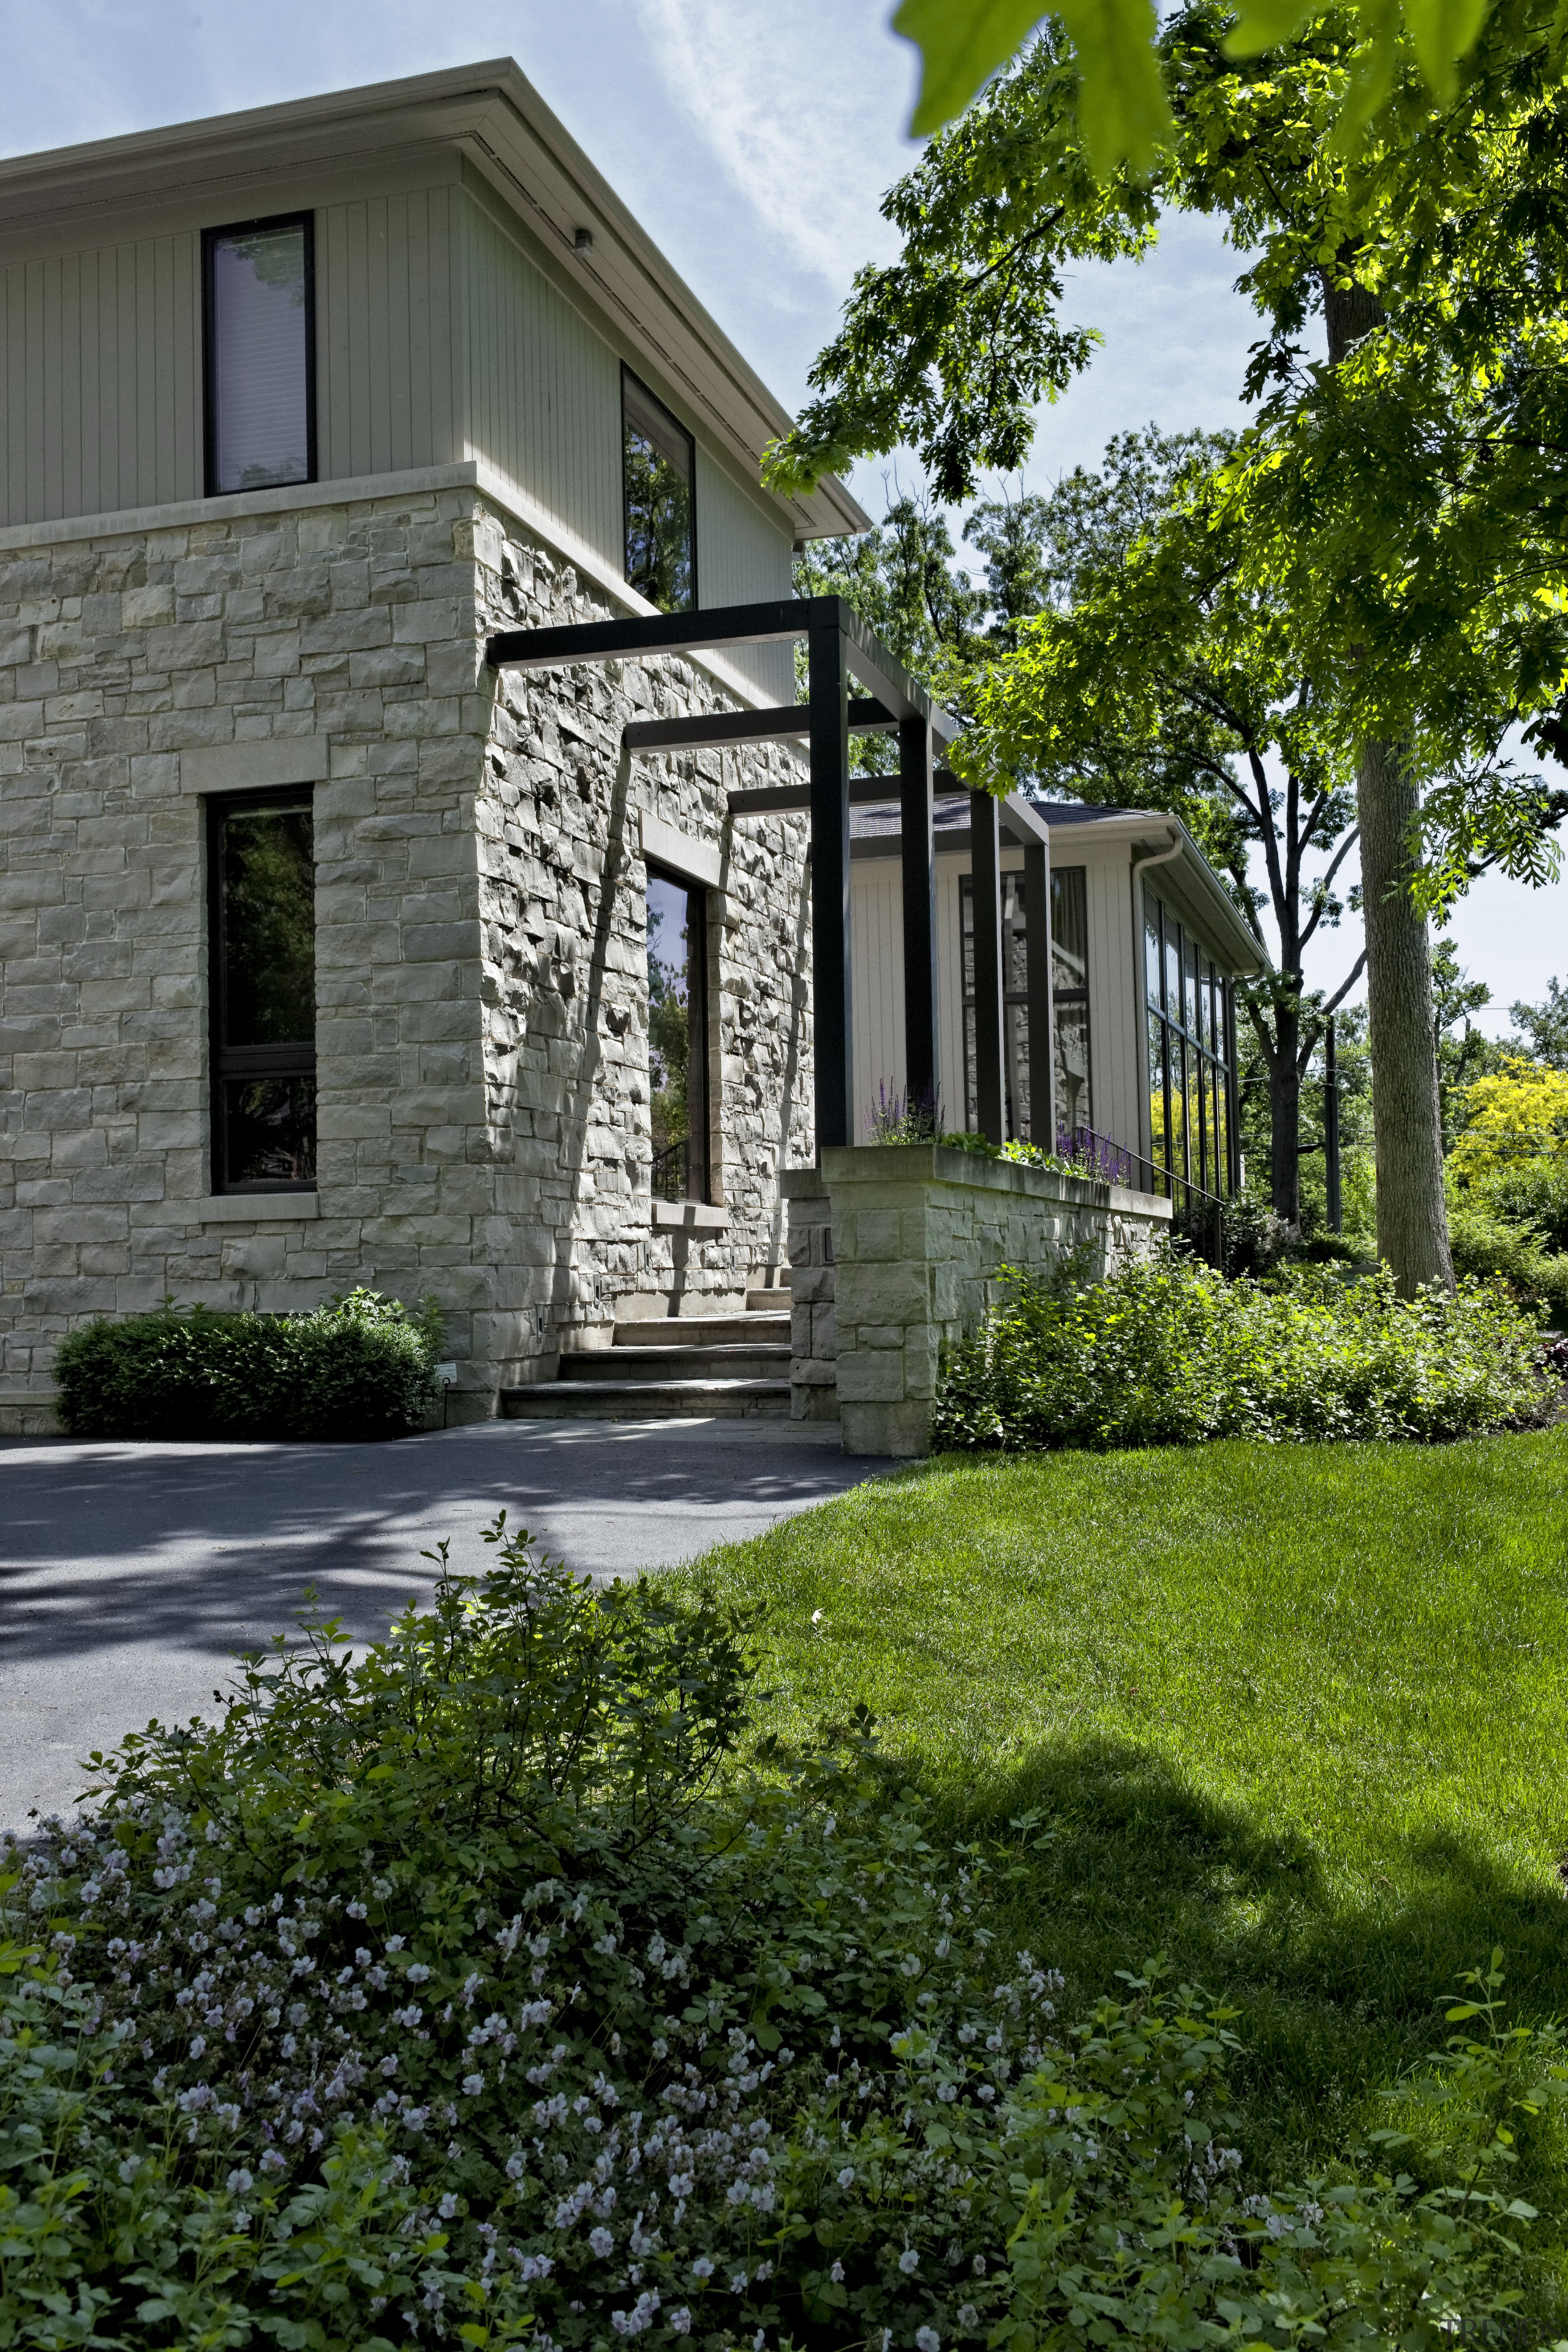 stone outside with paving and lawn - stone architecture, building, cottage, estate, facade, farmhouse, home, house, landscaping, neighbourhood, outdoor structure, property, real estate, residential area, siding, walkway, window, yard, green